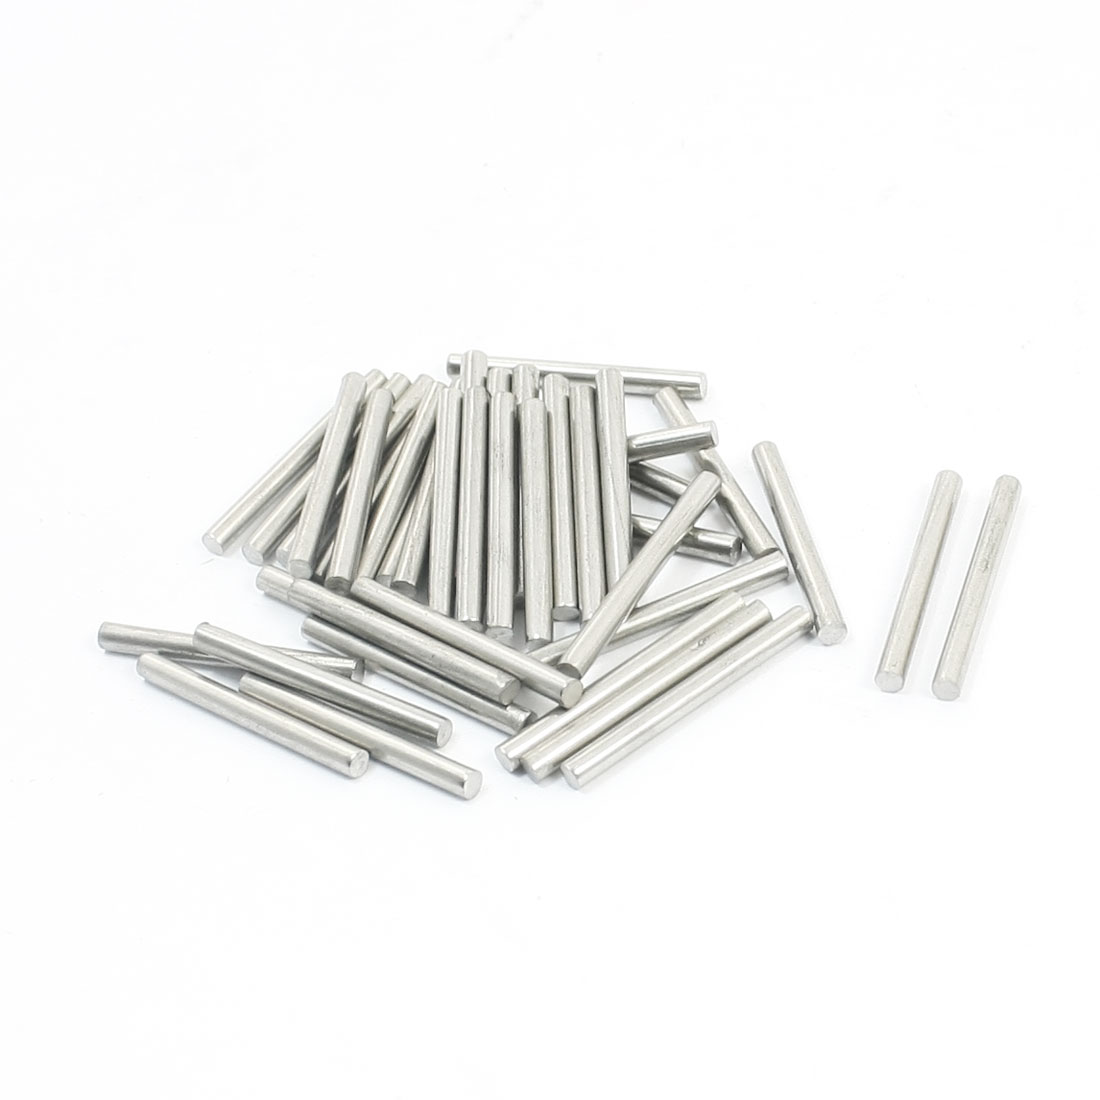 40PCS Hardware Tools 25mm x 2.5mm Stainless Steel Round Rod Axle Bars